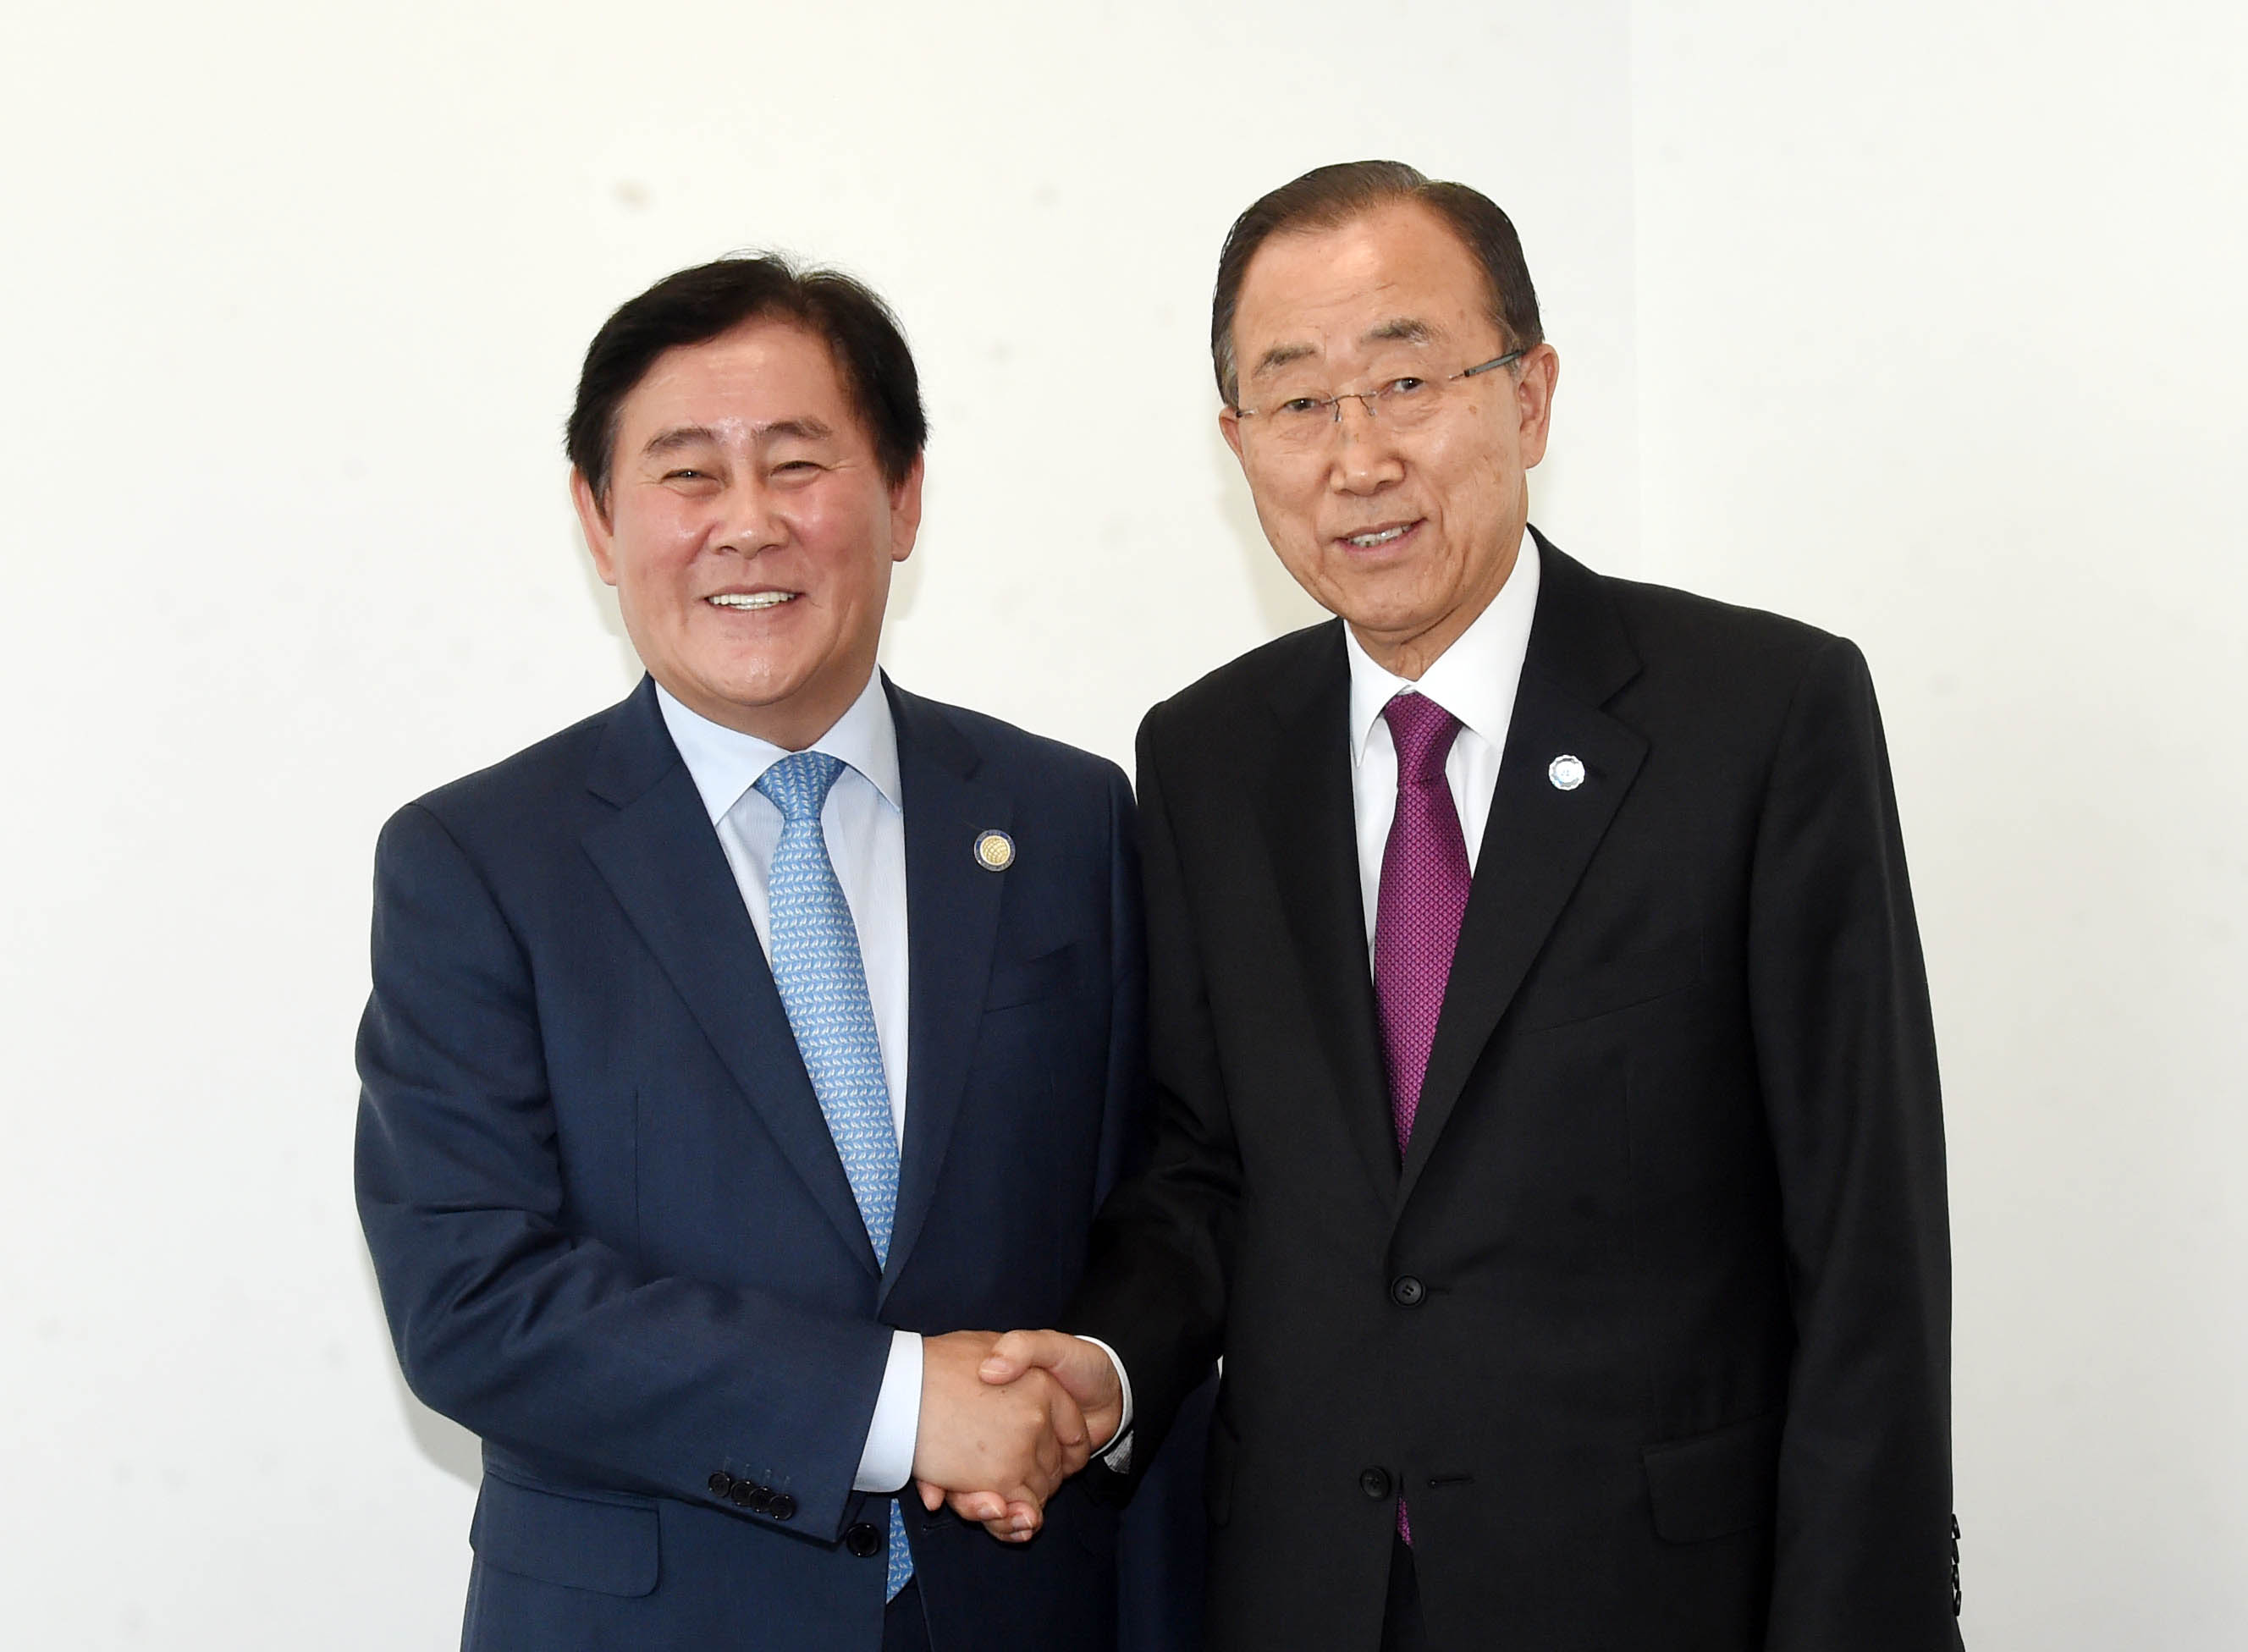 Deputy Prime Minister Choi meets with UN Secretary-General Ban Ki-moon at the IMF/World Bank Annual Meetings in Lima, Peru